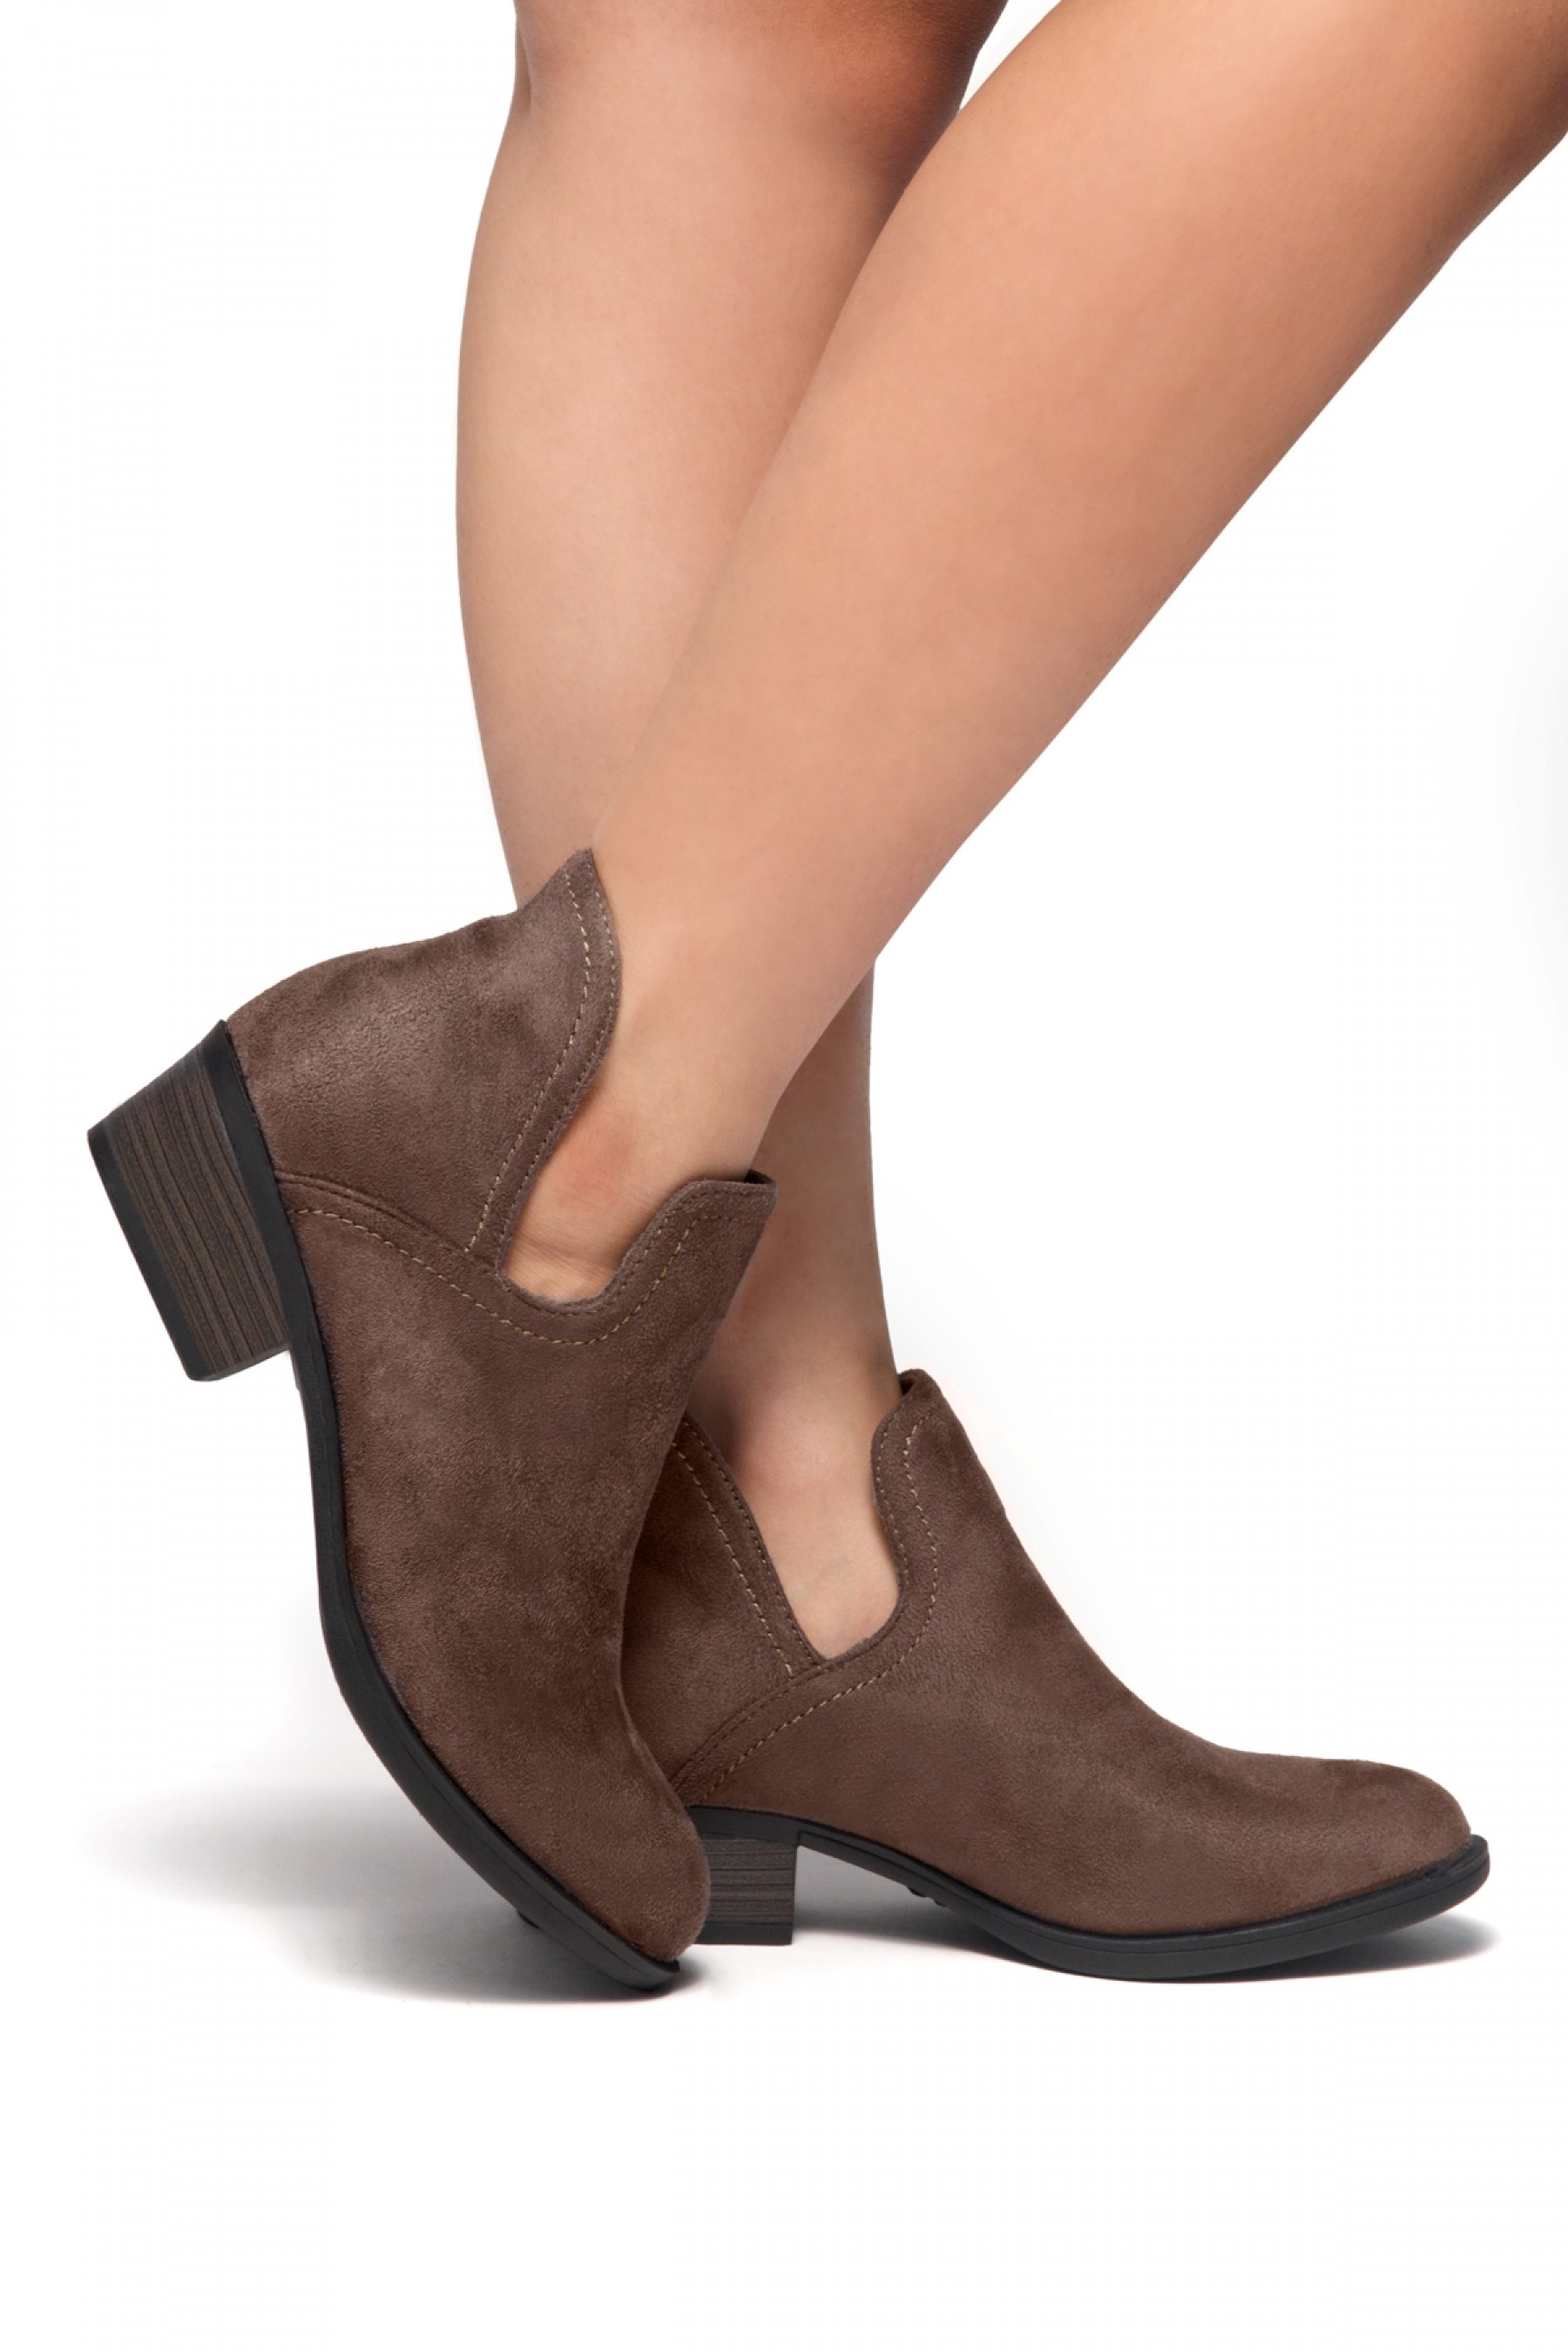 HerStyle Cabbe-Almond toe, stacked heel (Khaki)